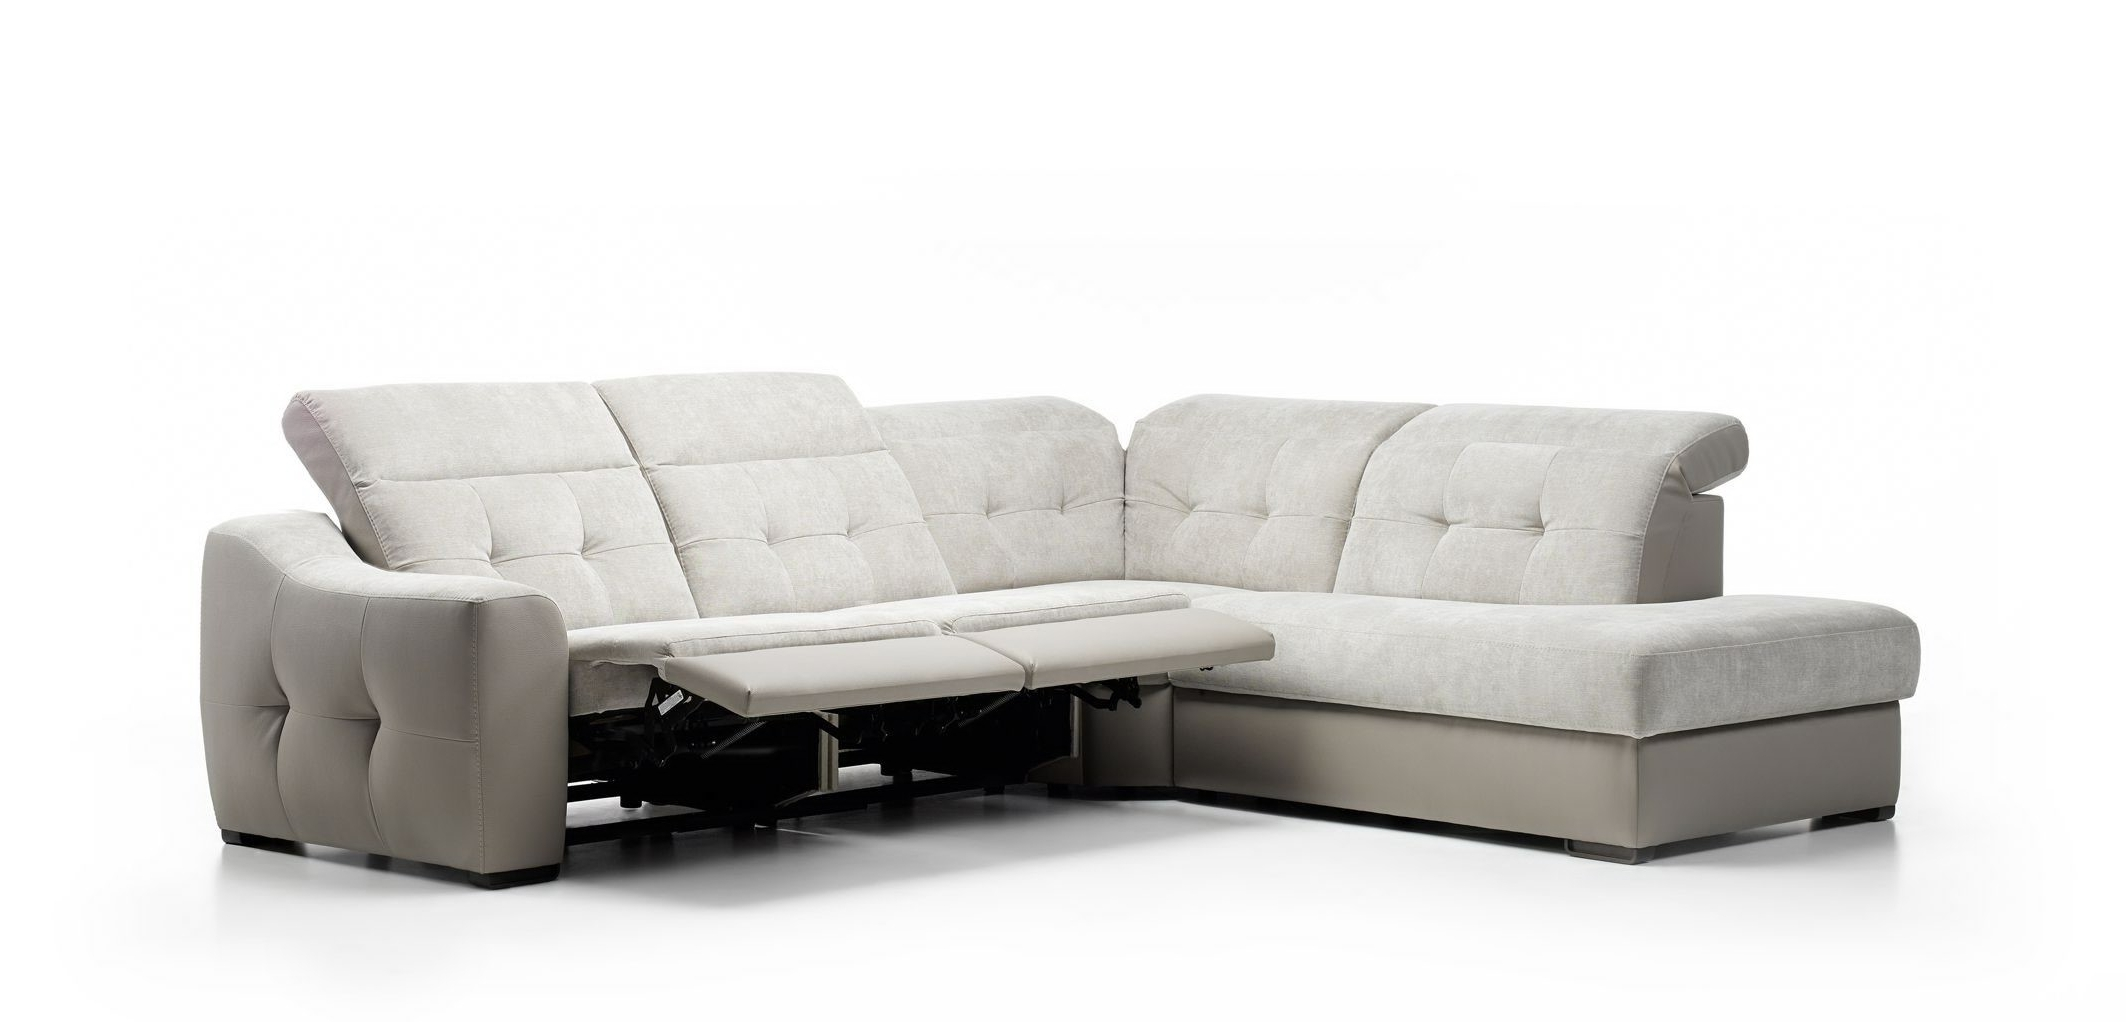 Sectional Sofas In Canada Inside 2018 Sectional Sofa Design: Modern Sectional Sofa Bed Canada (View 4 of 15)